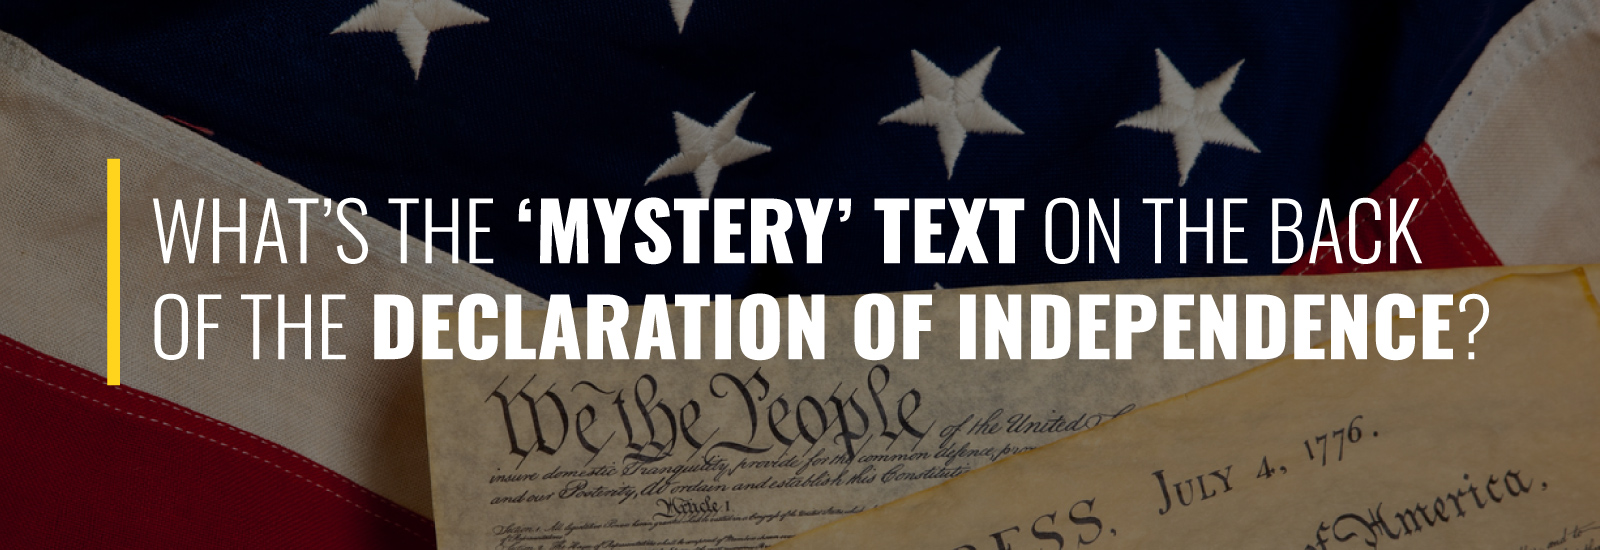 What's the 'Mystery' Text on the Back of the Declaration of Independence?